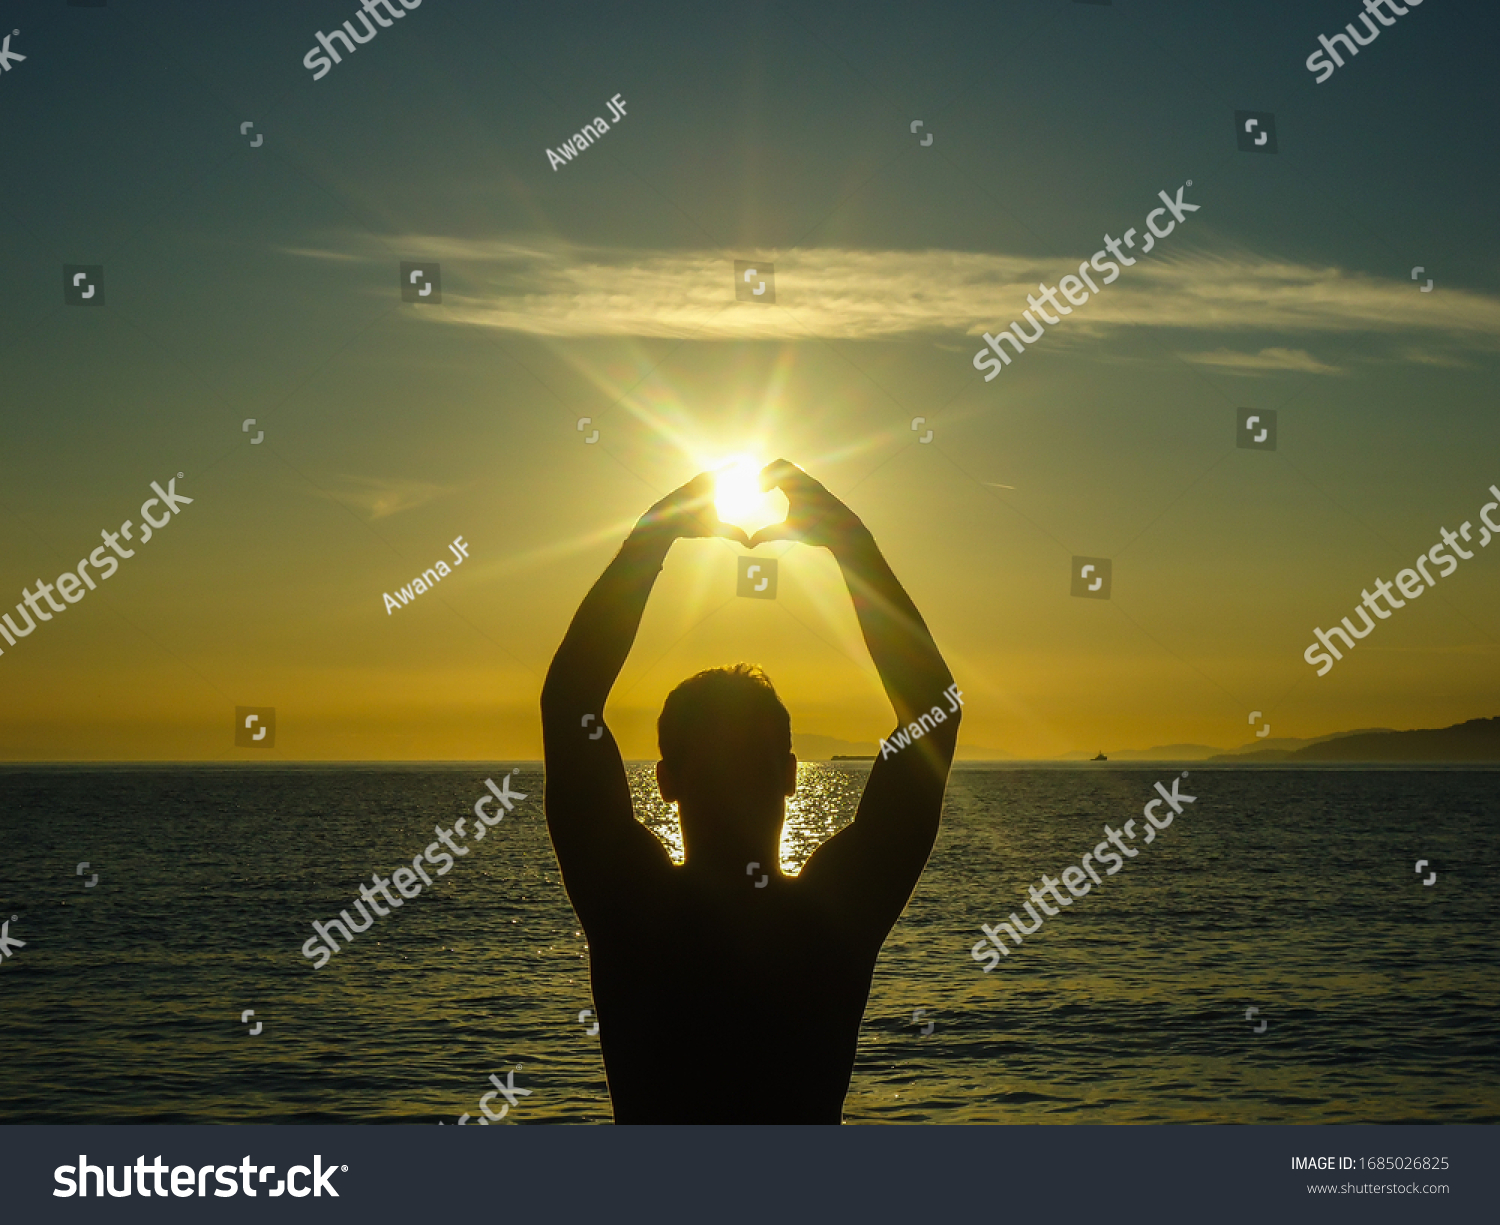 Silhouette of a man standing in front of the pacific ocean forming a heart with his hands during a sunset on the university of british columbia campus beach